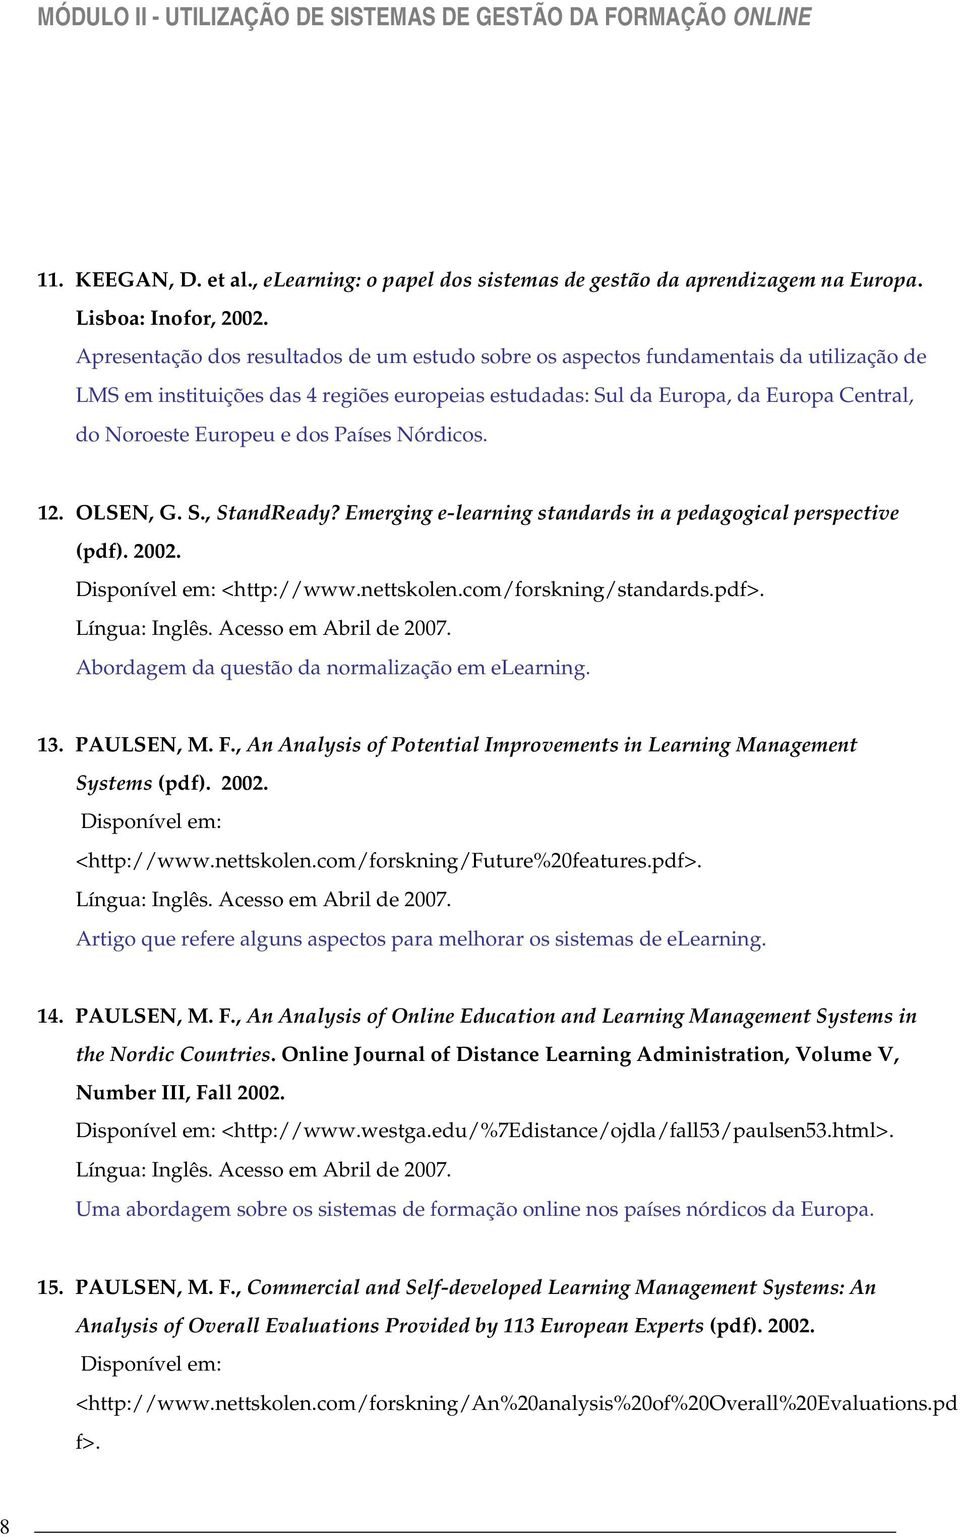 dos Países Nórdicos. 12. OLSEN, G. S., StandReady? Emerging e-learning standards in a pedagogical perspective (pdf). 2002. Disponível em: <http://www.nettskolen.com/forskning/standards.pdf>.